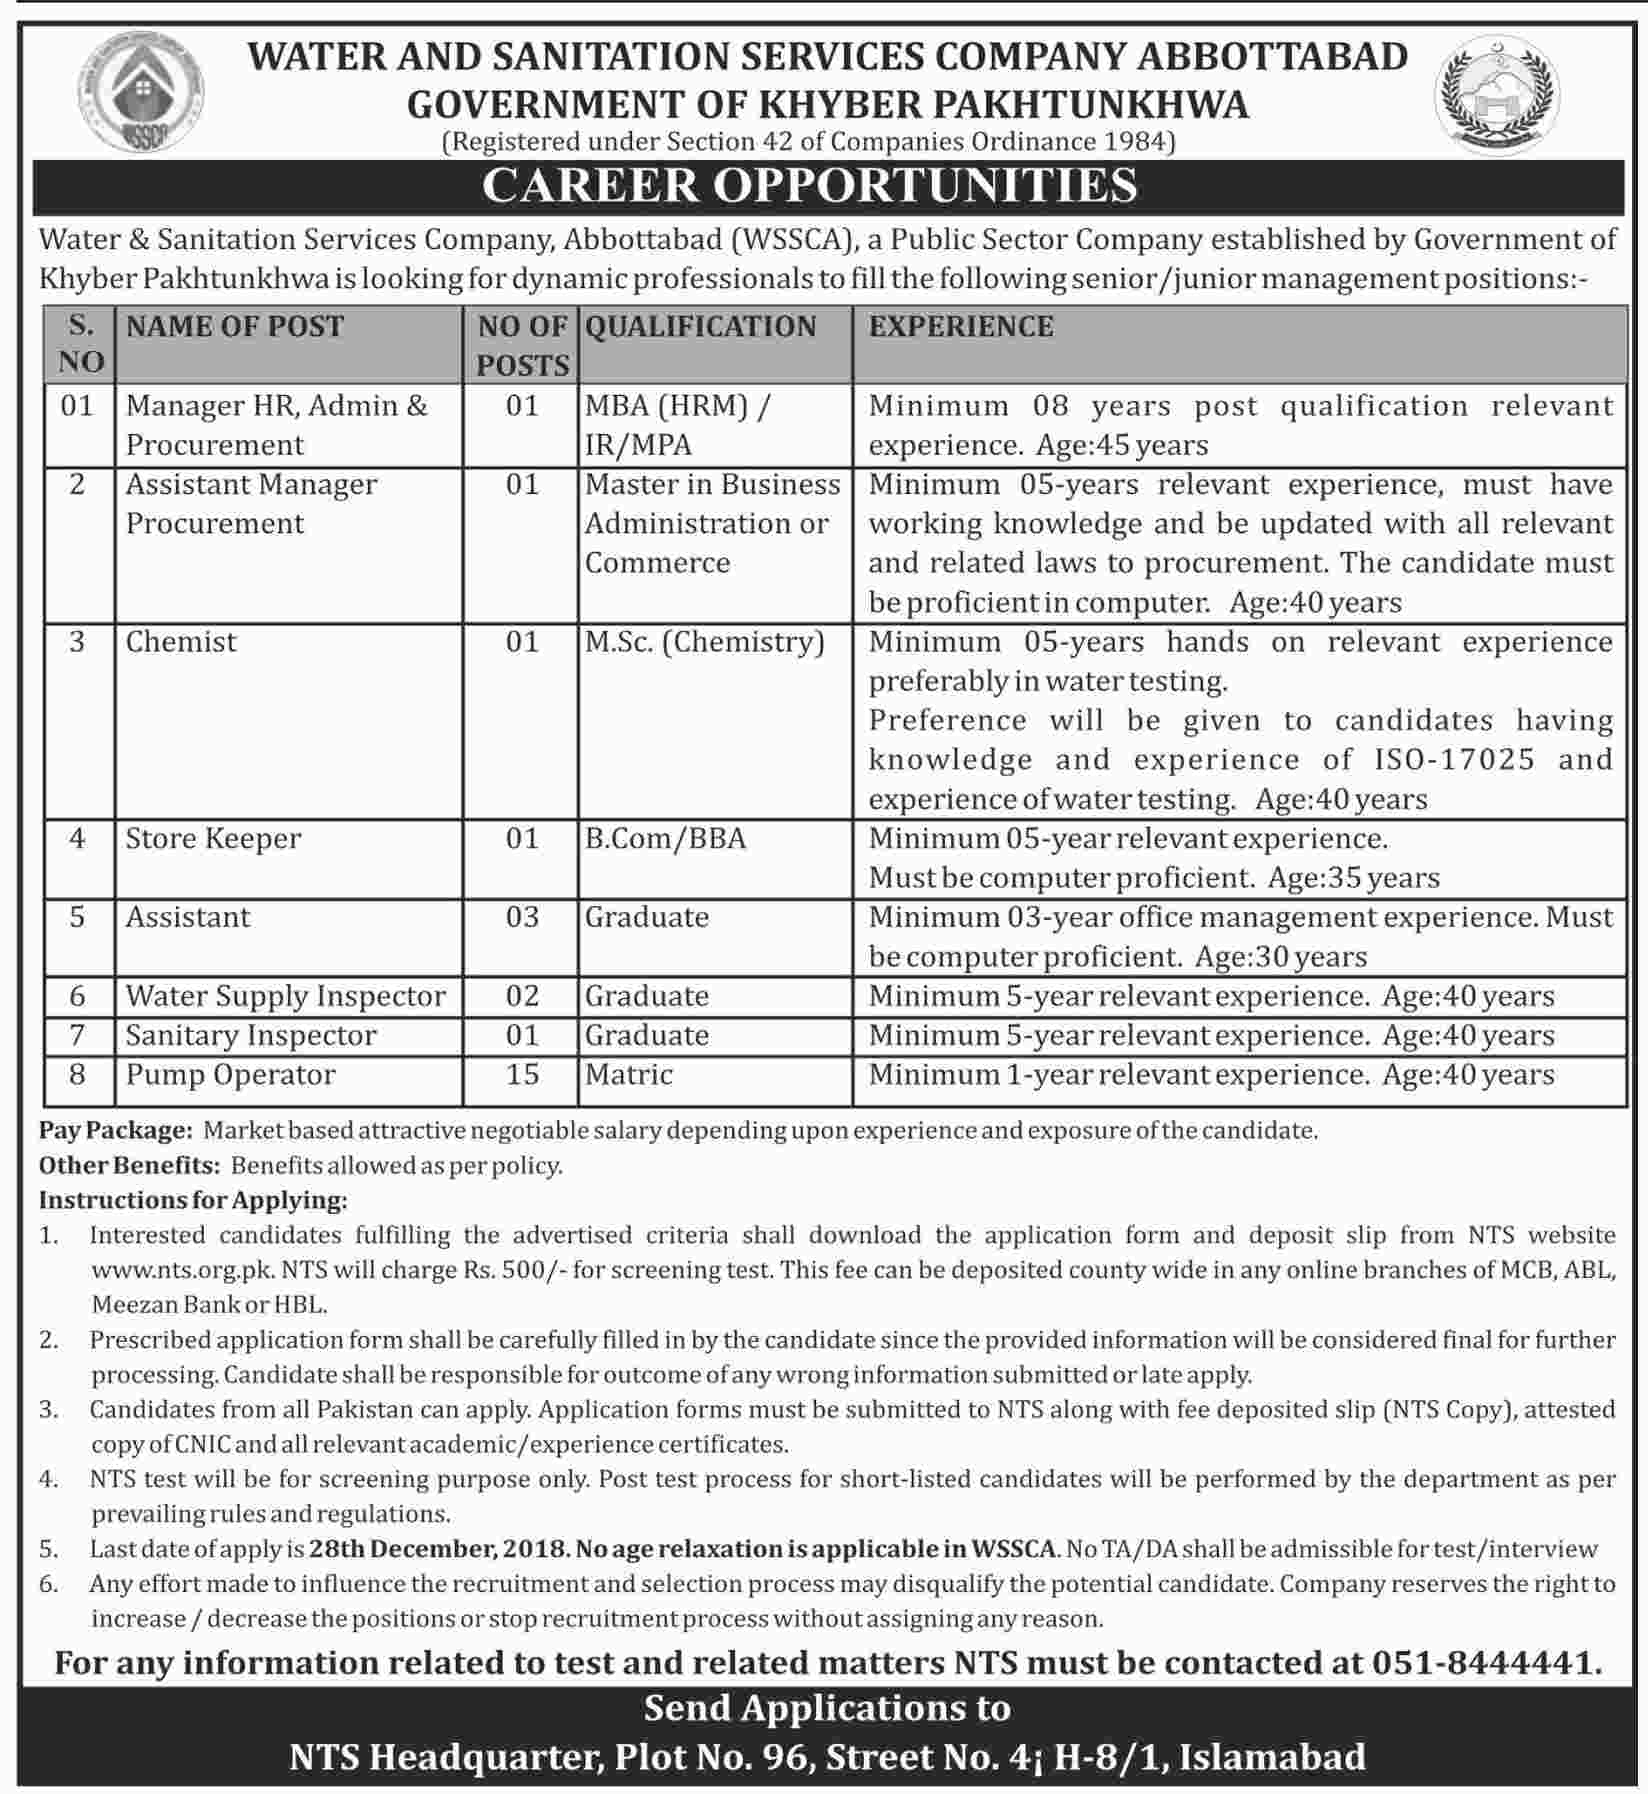 Water & Sanitation Services Company Abbottabad NTS Jobs 2021 Apply Online